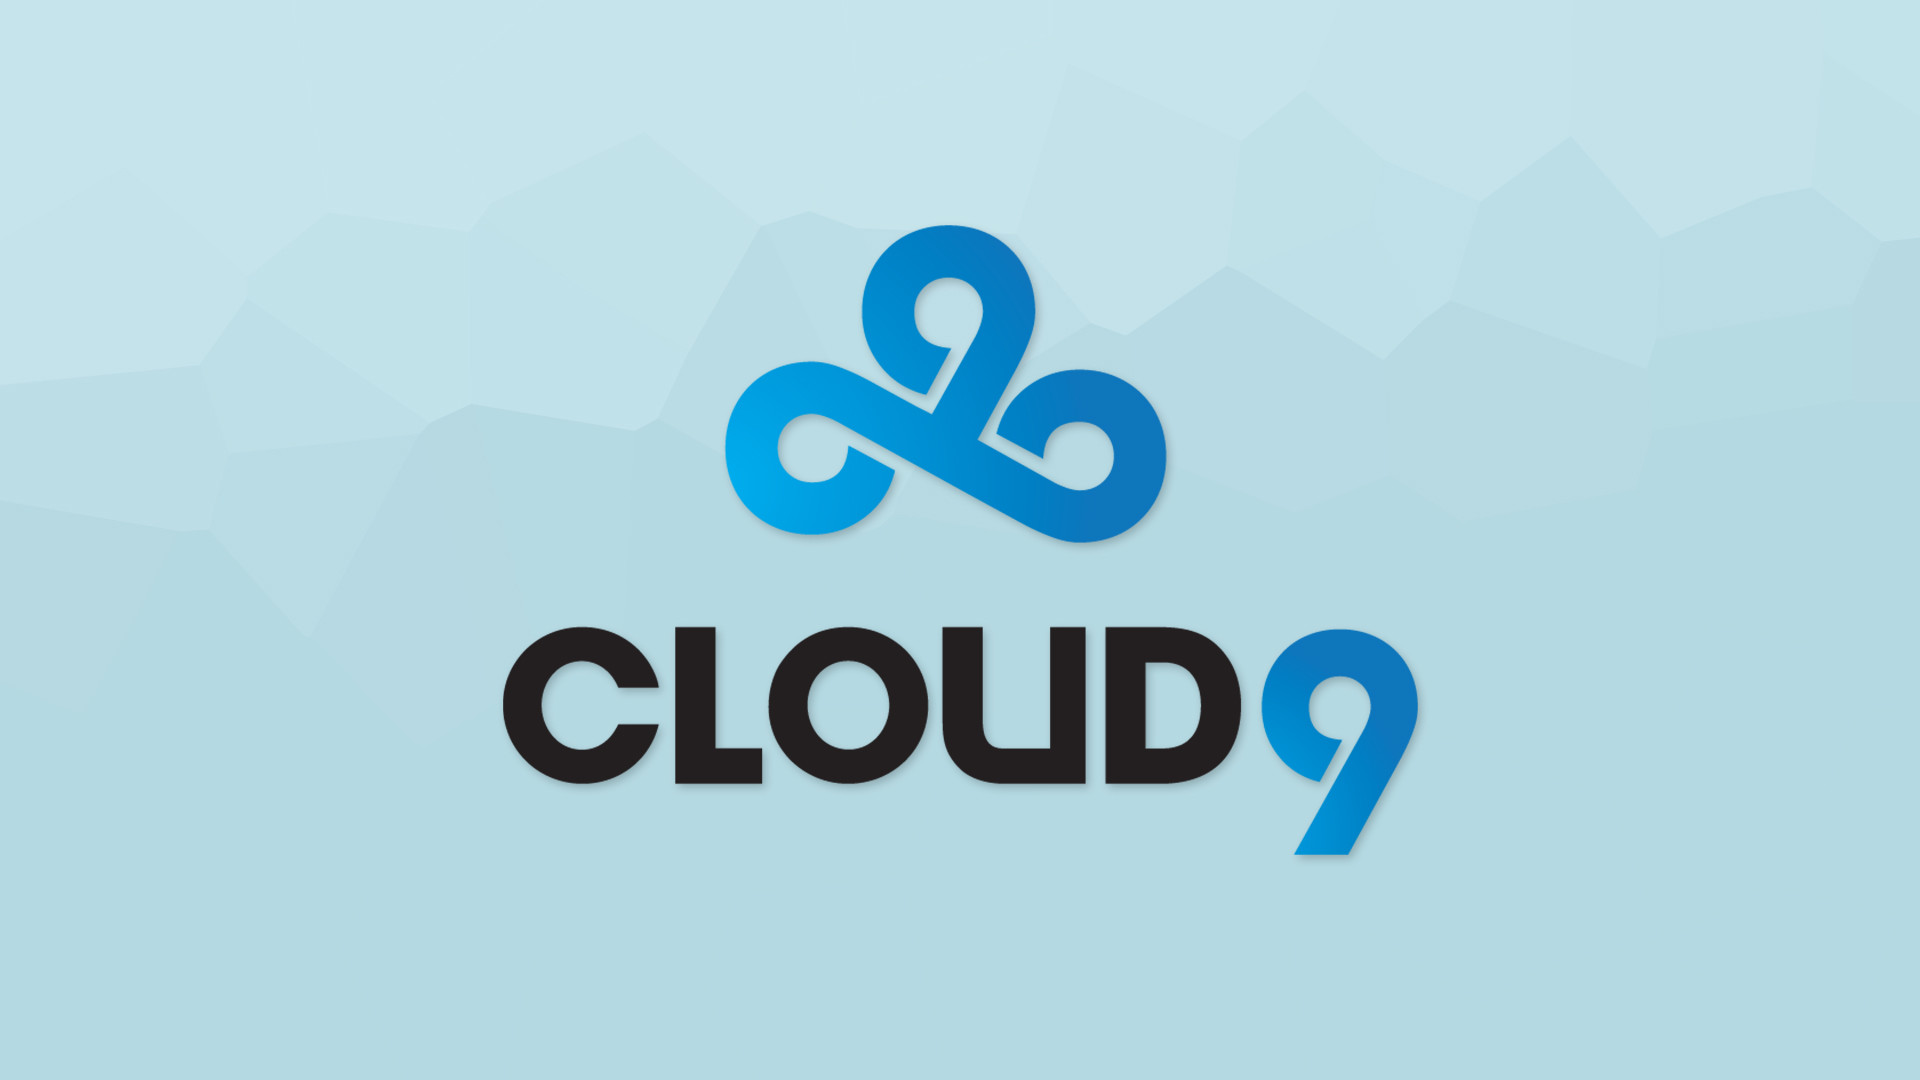 I made a basic Cloud 9 Wallpaper for myself, figured someone else might  want to use it too.